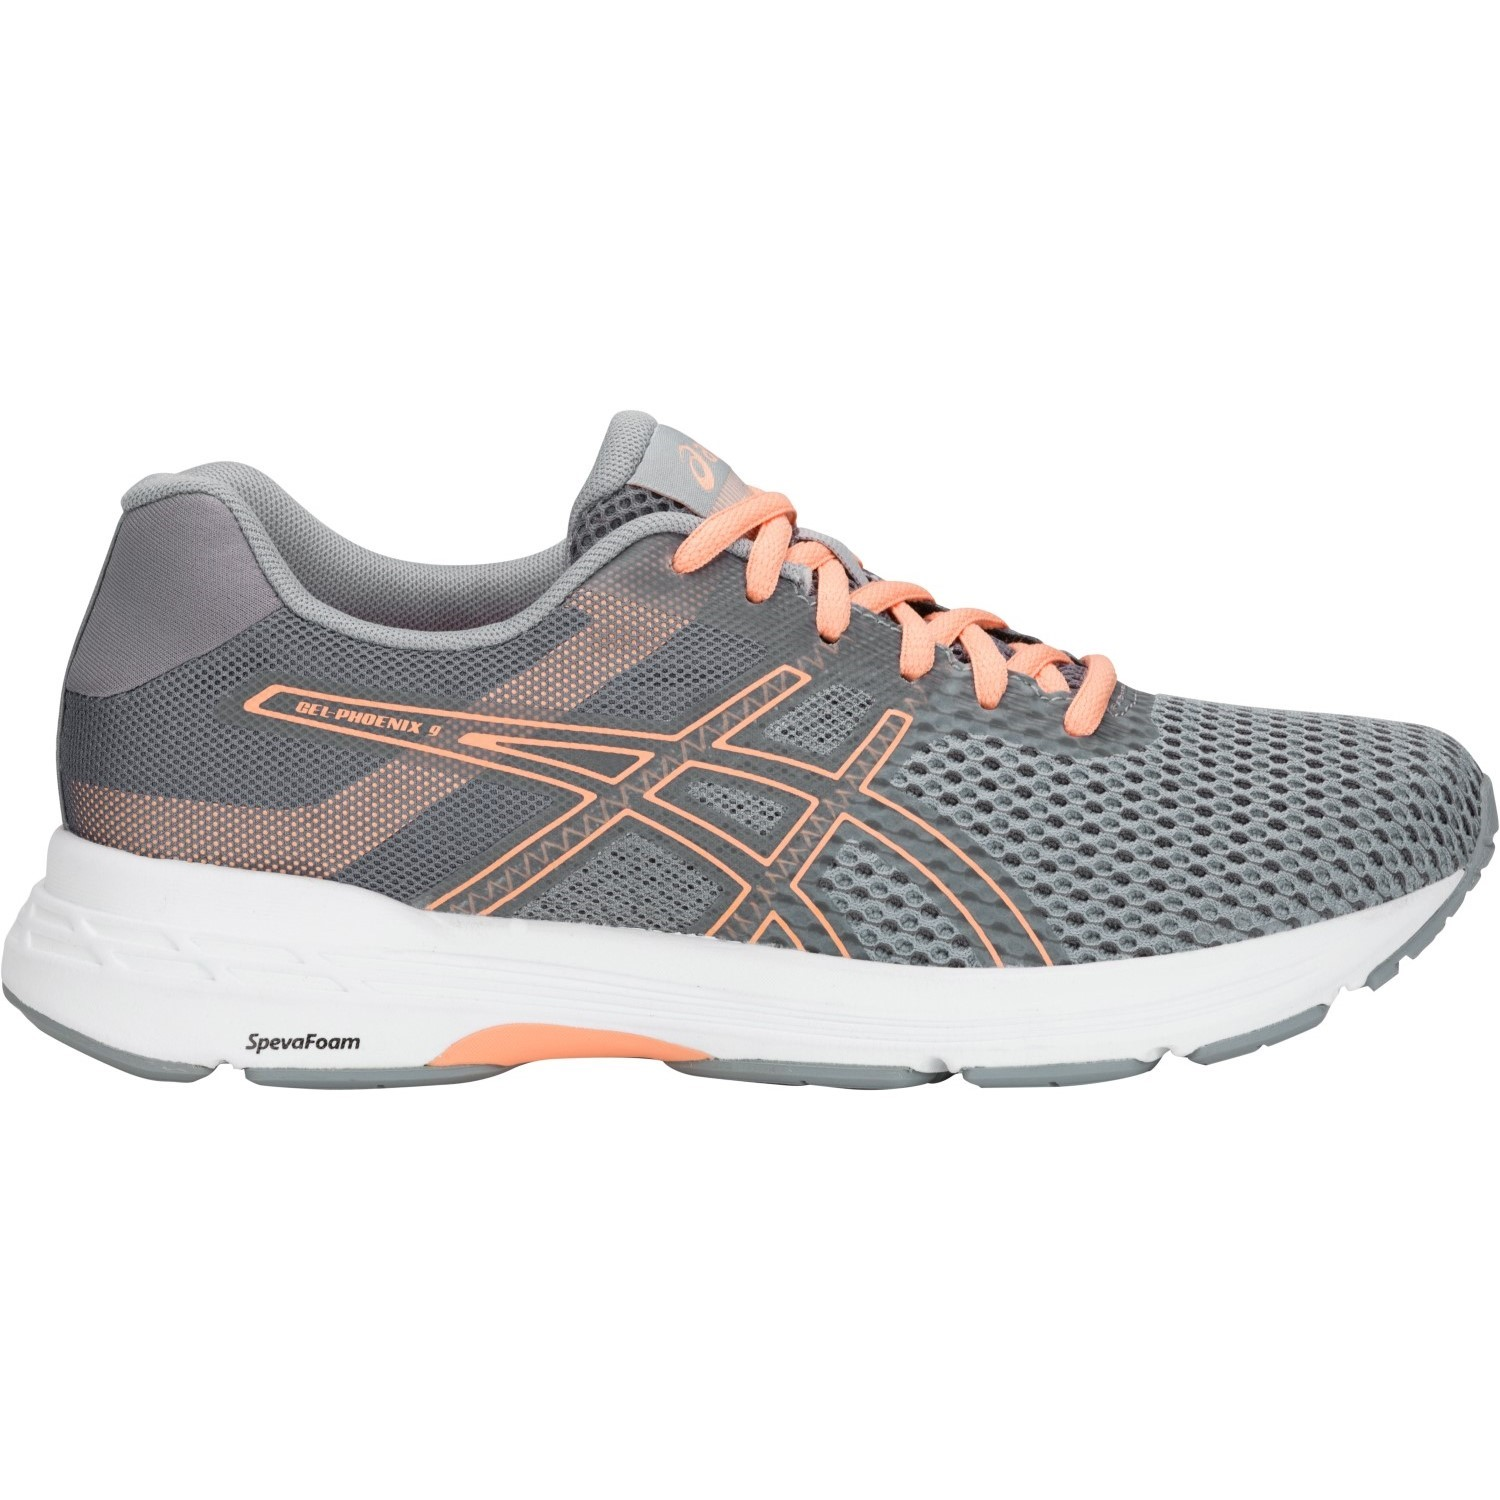 professional sale wholesale price uk cheap sale Asics Gel Phoenix 9 - Womens Running Shoes